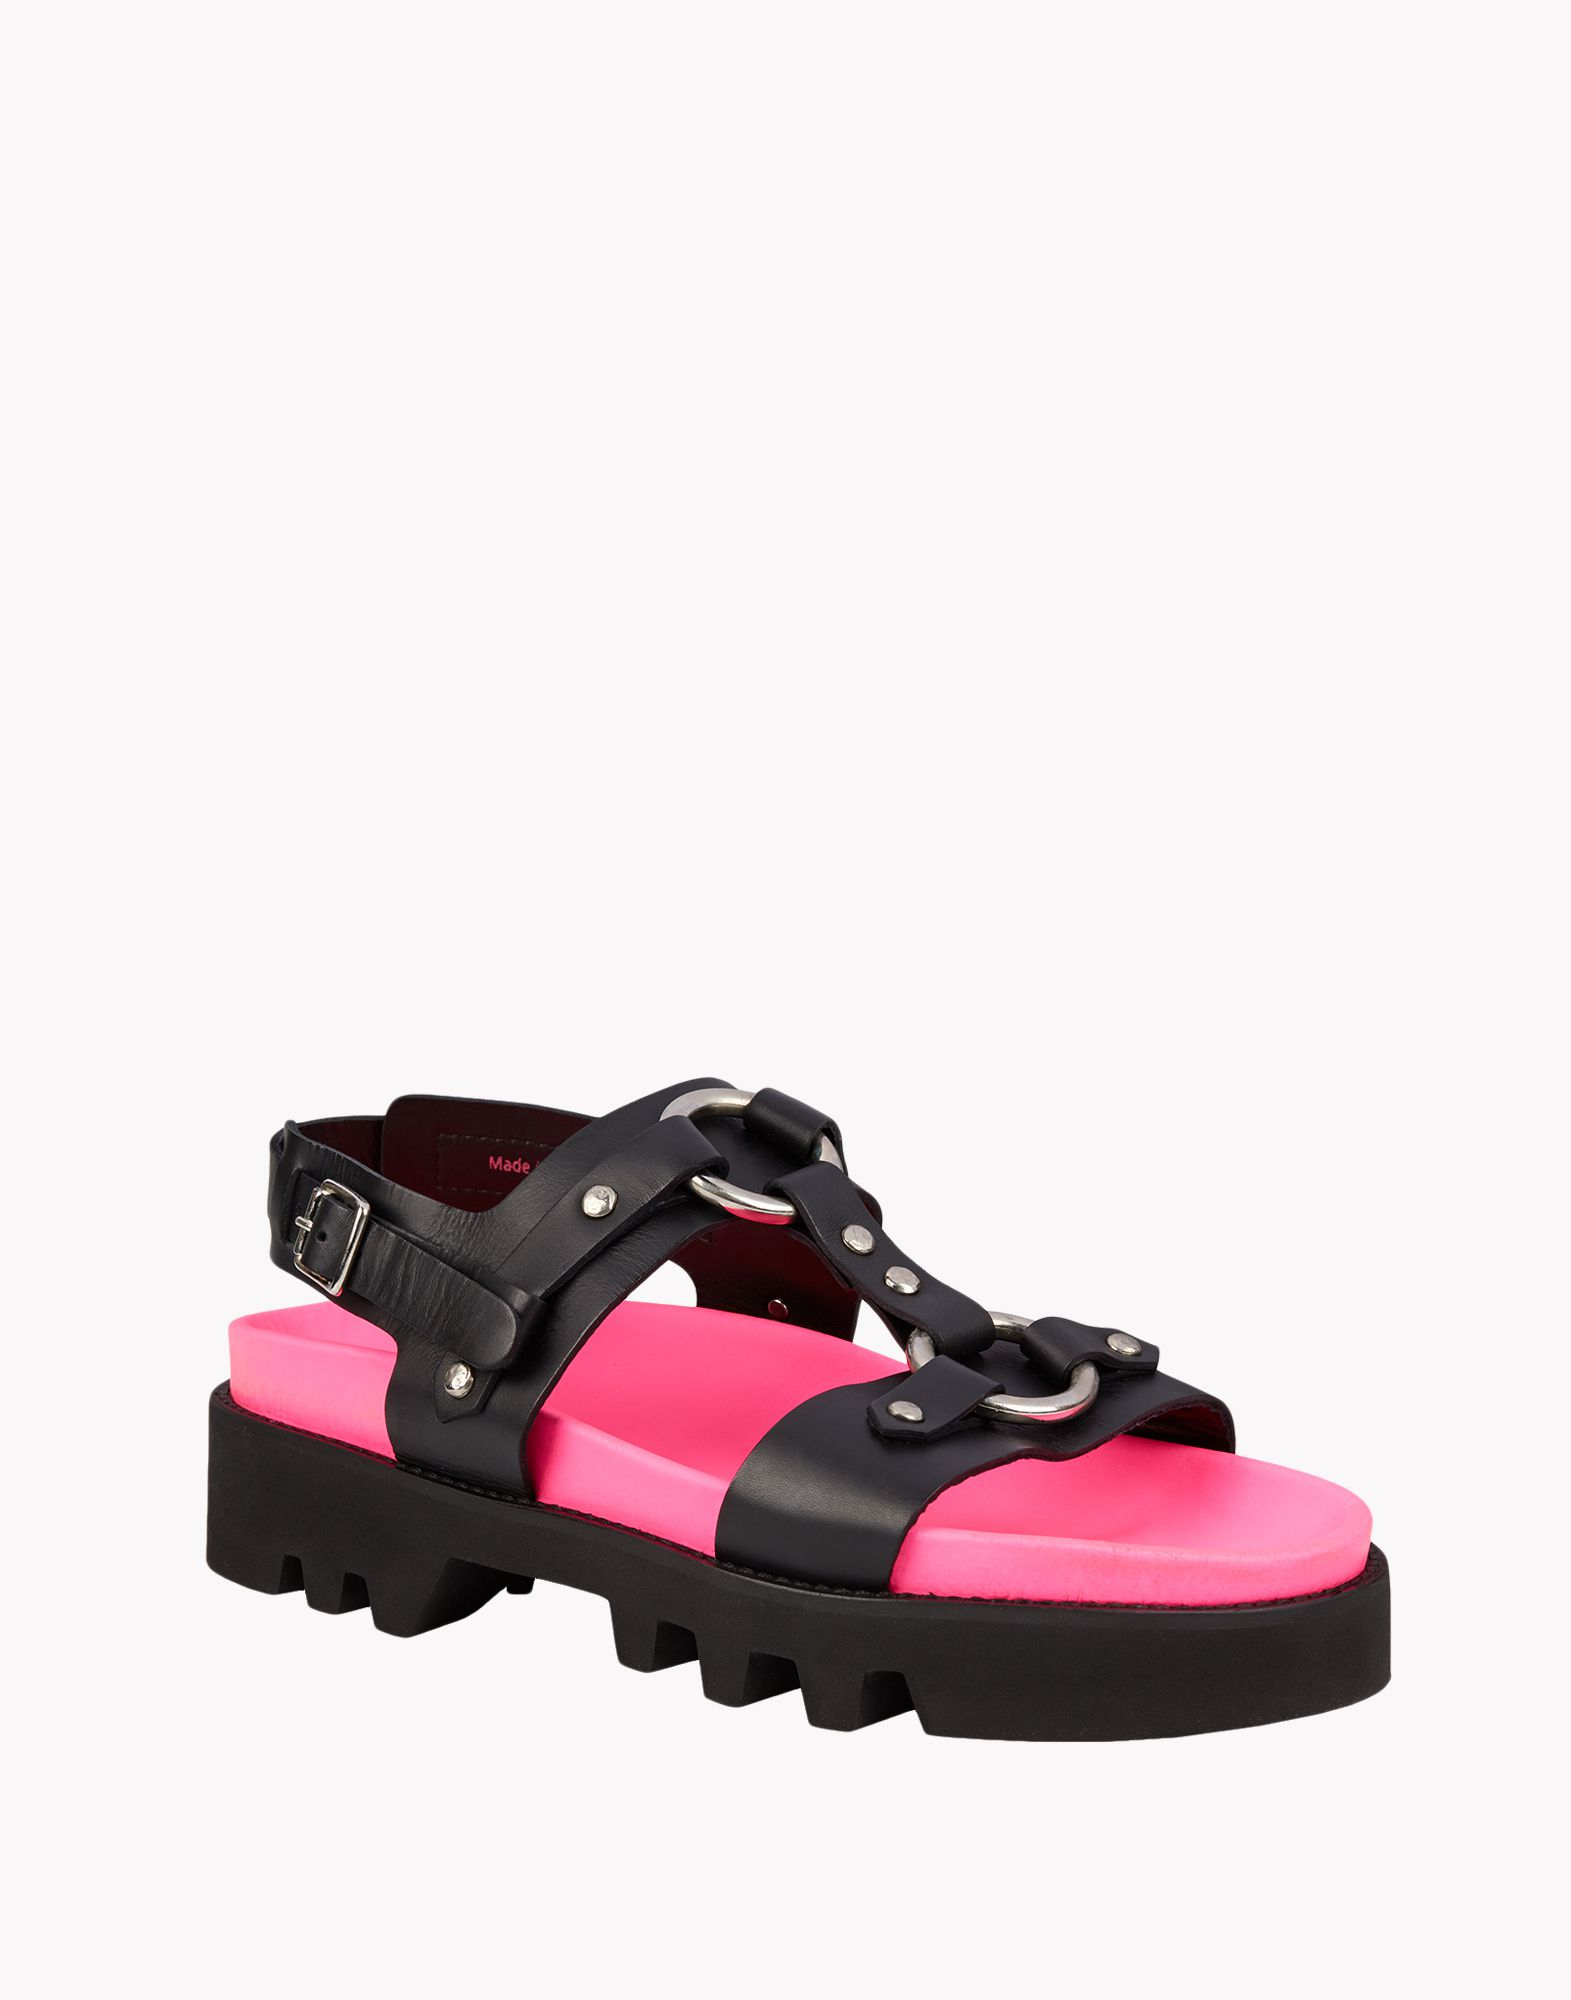 Moses Shoes Canada